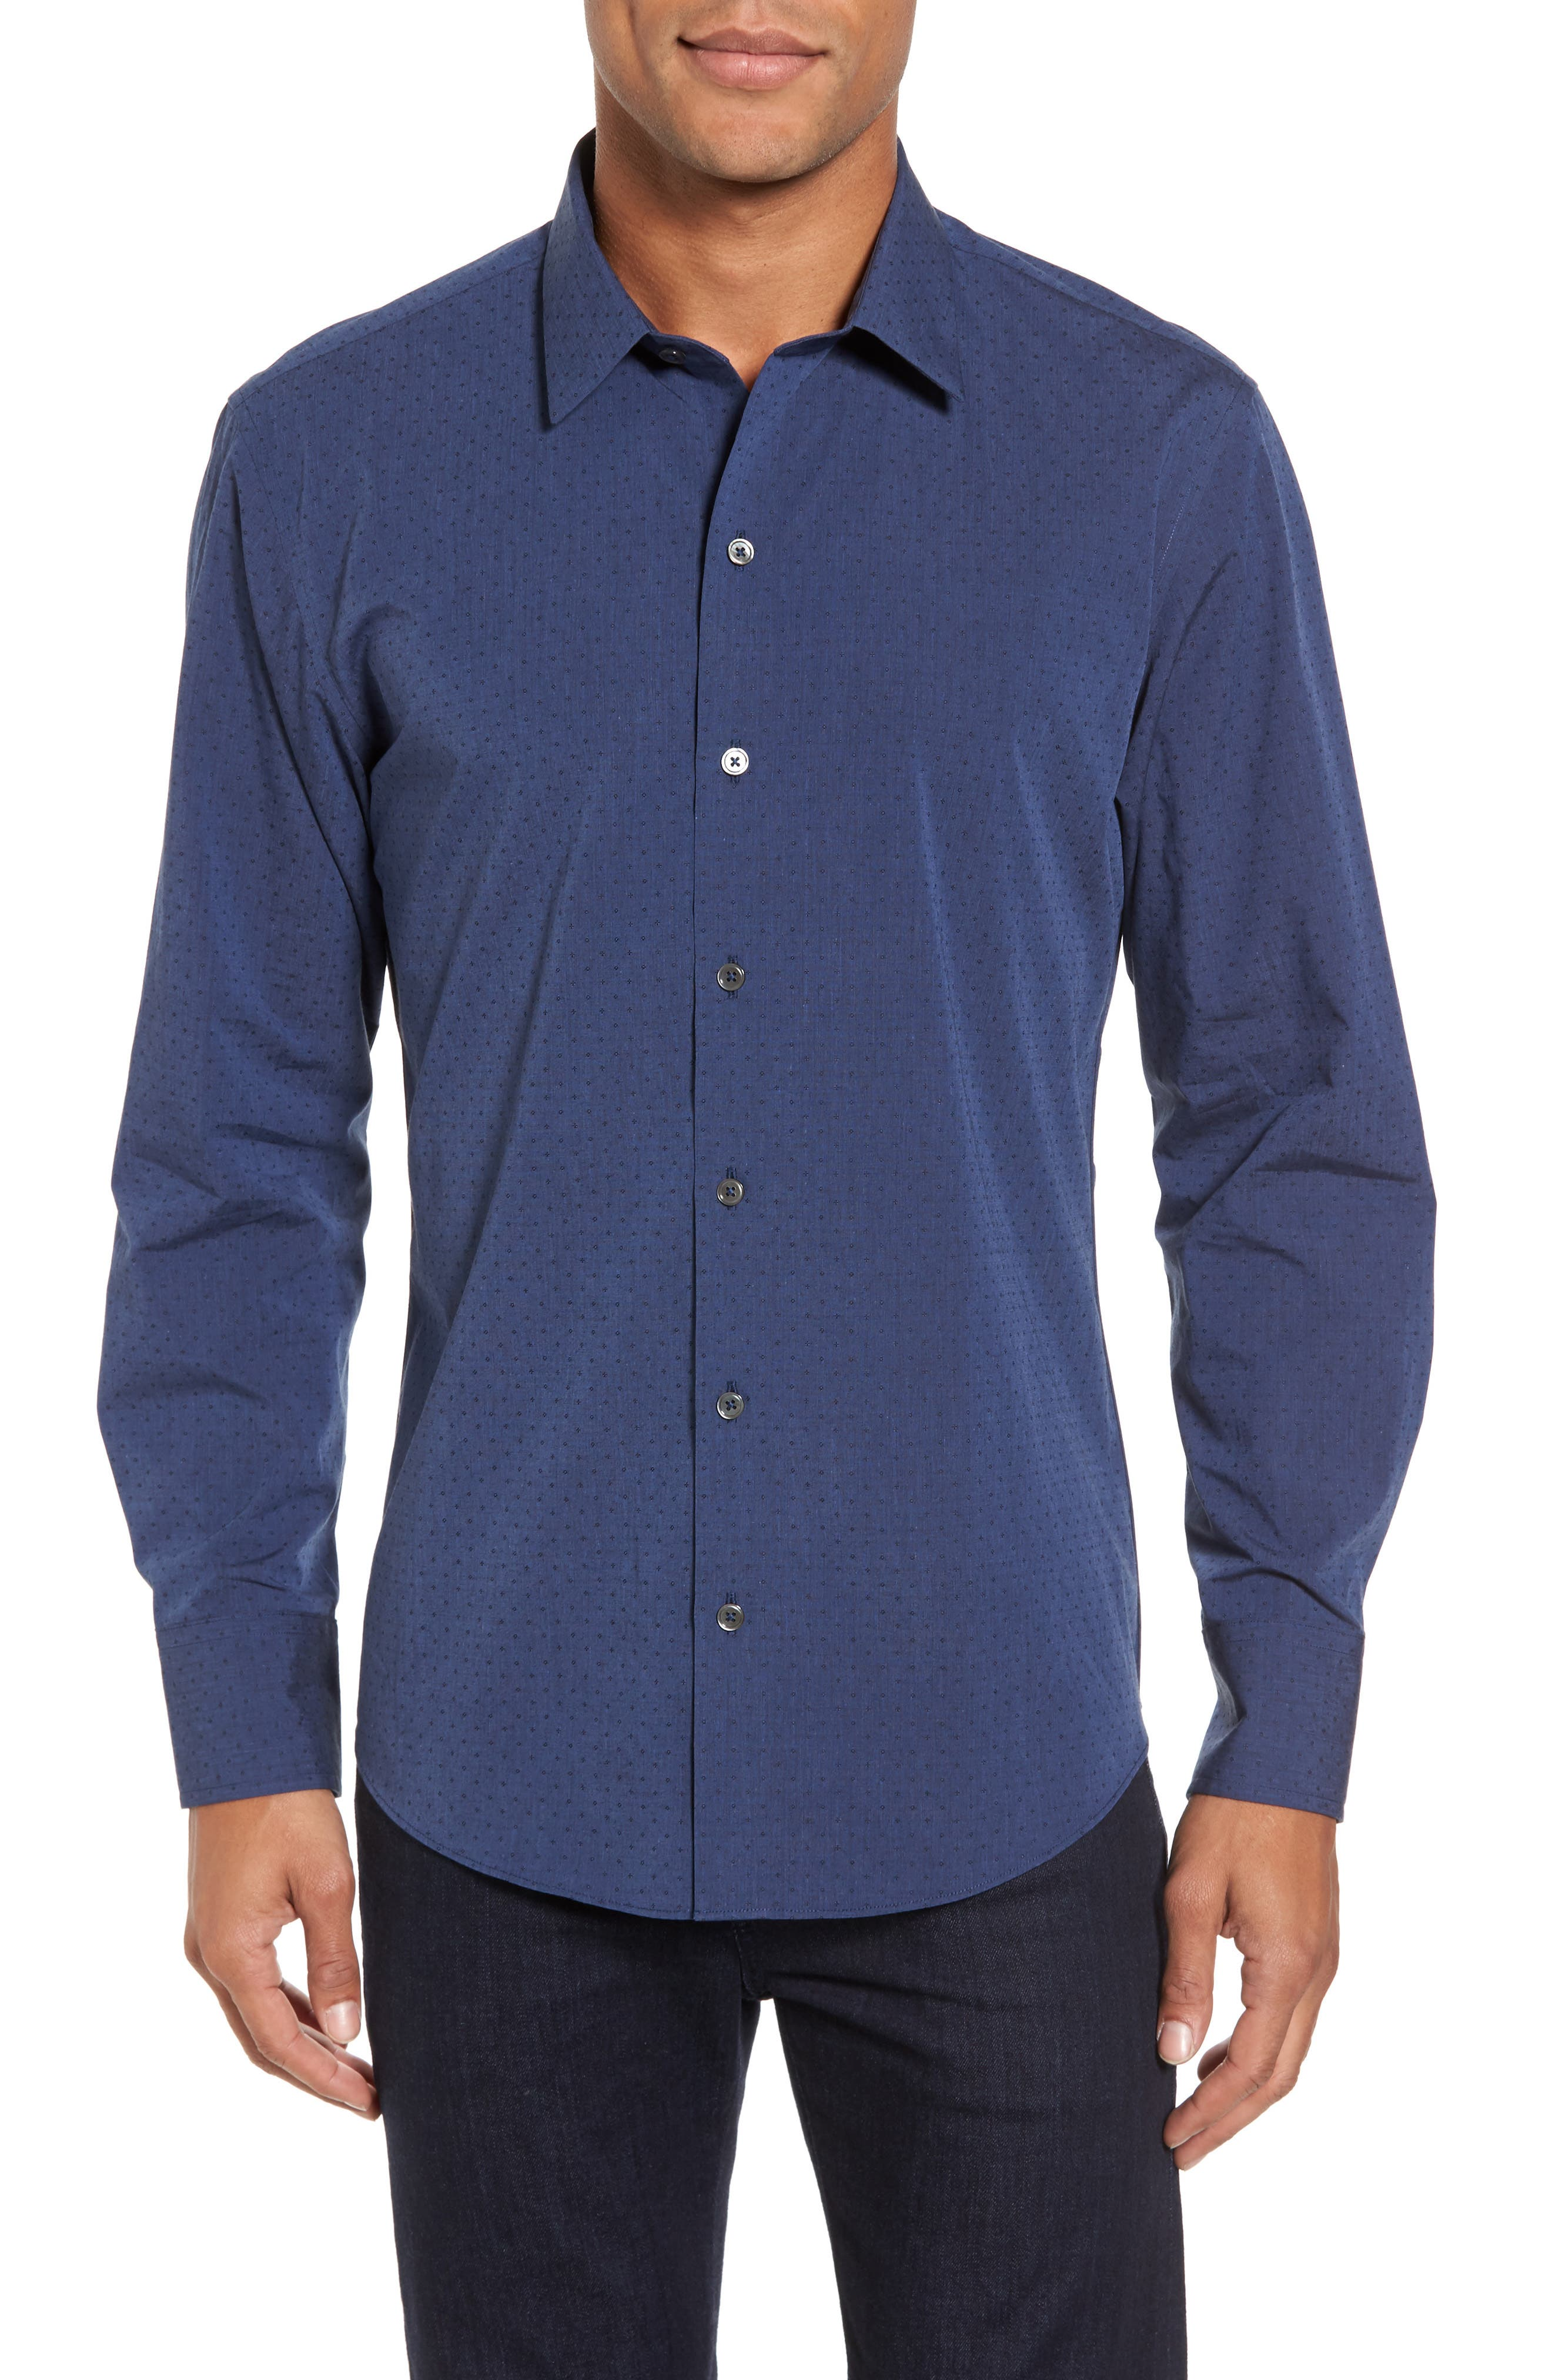 Alternate Image 1 Selected - Zachary Prell Colly Slim Fit Print Sport Shirt